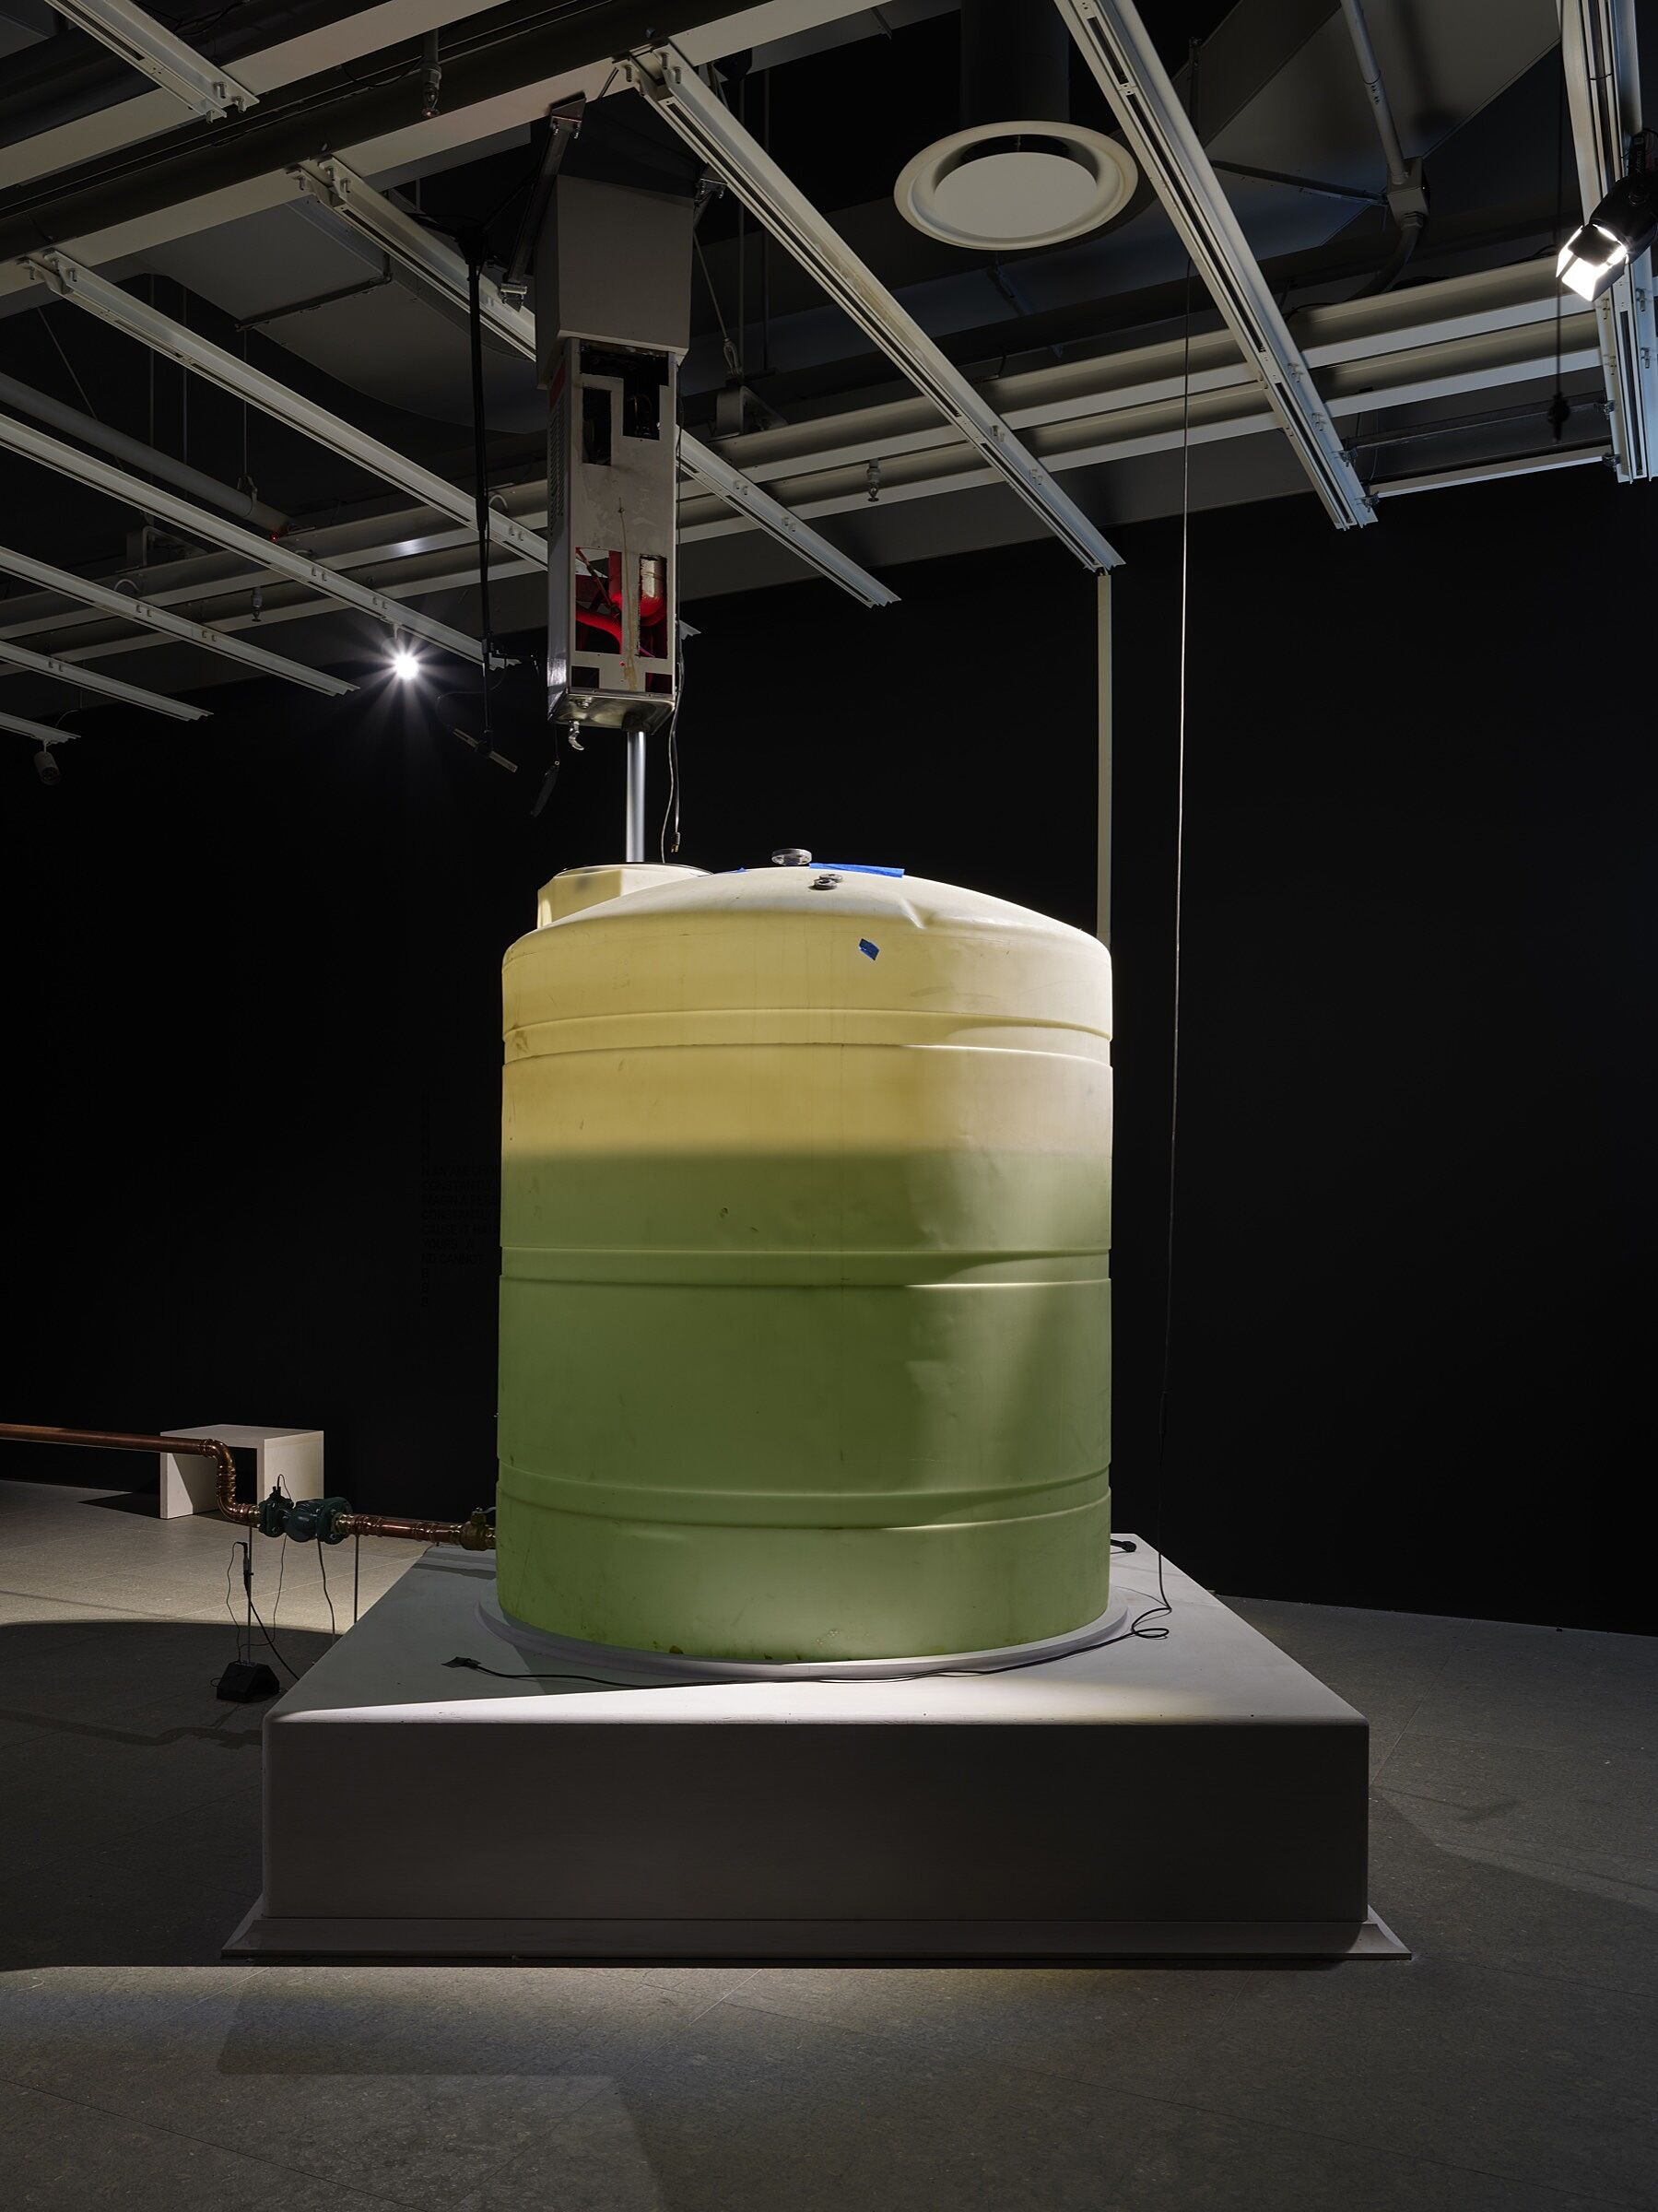 A photo of a water tank in a dark gallery.